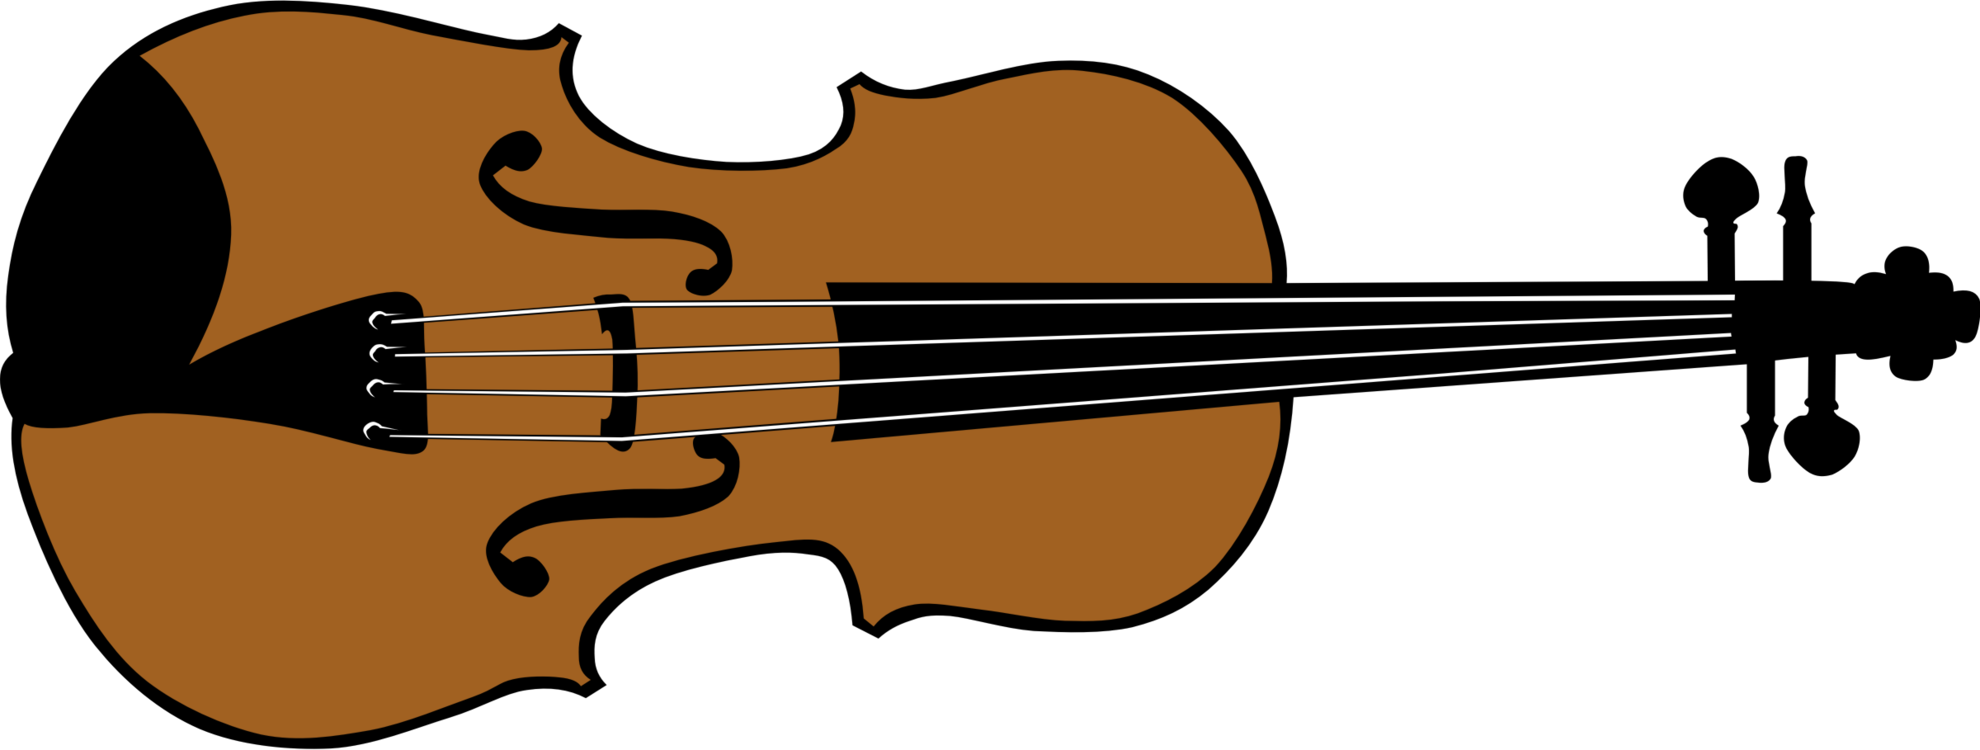 Music fiddle art bow. Guitar clipart violin png